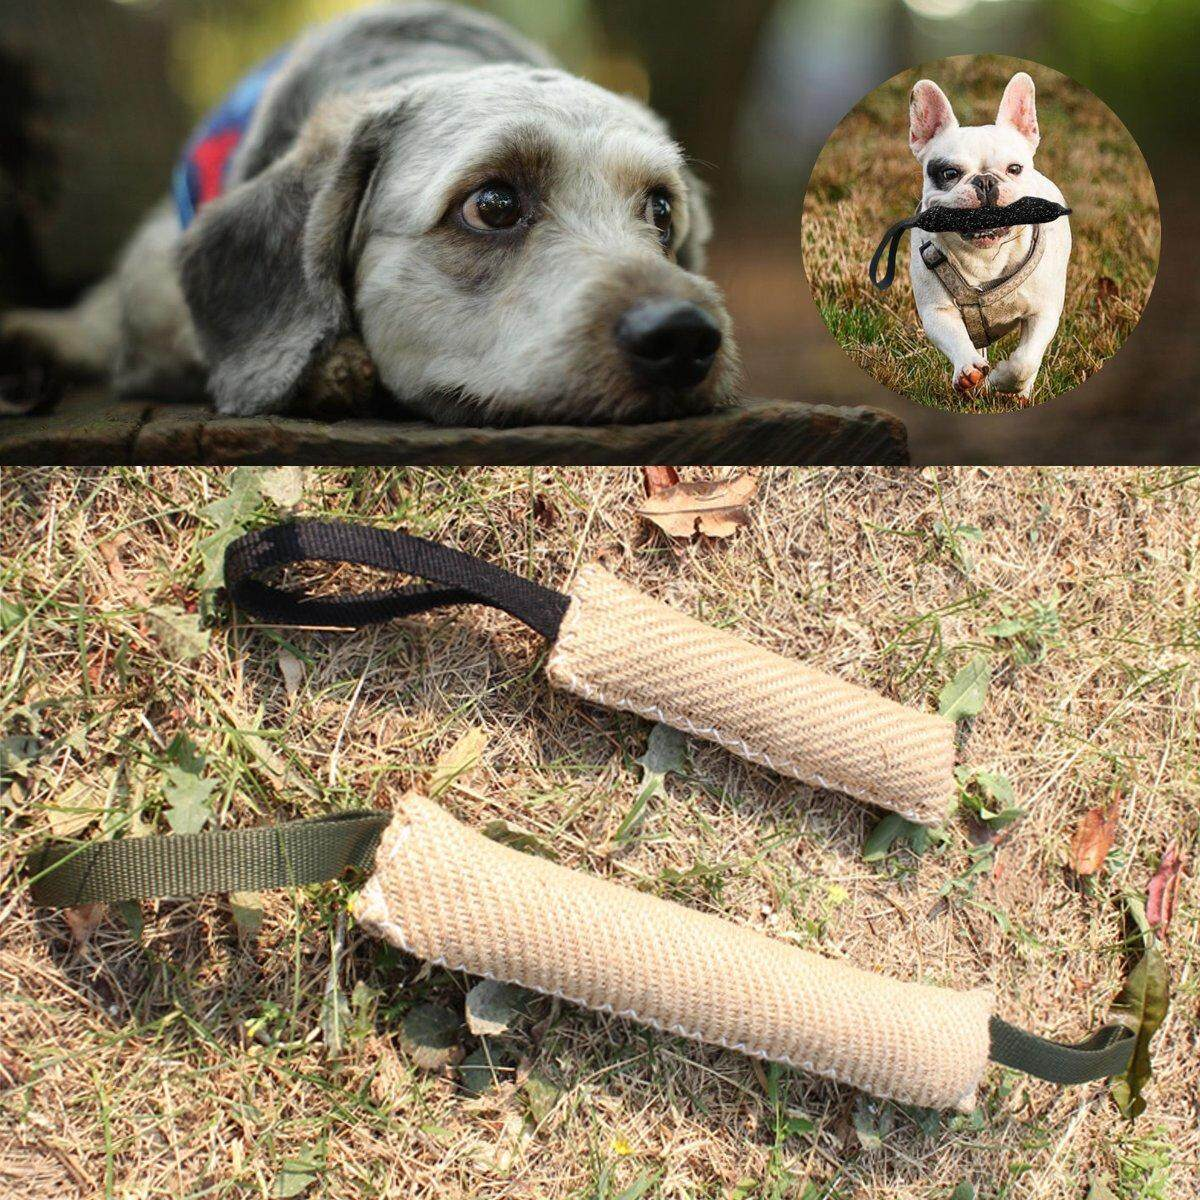 2 Handles Dogs Bite Sleeve Jute Arm Protection for Dog Puppy Training Chew